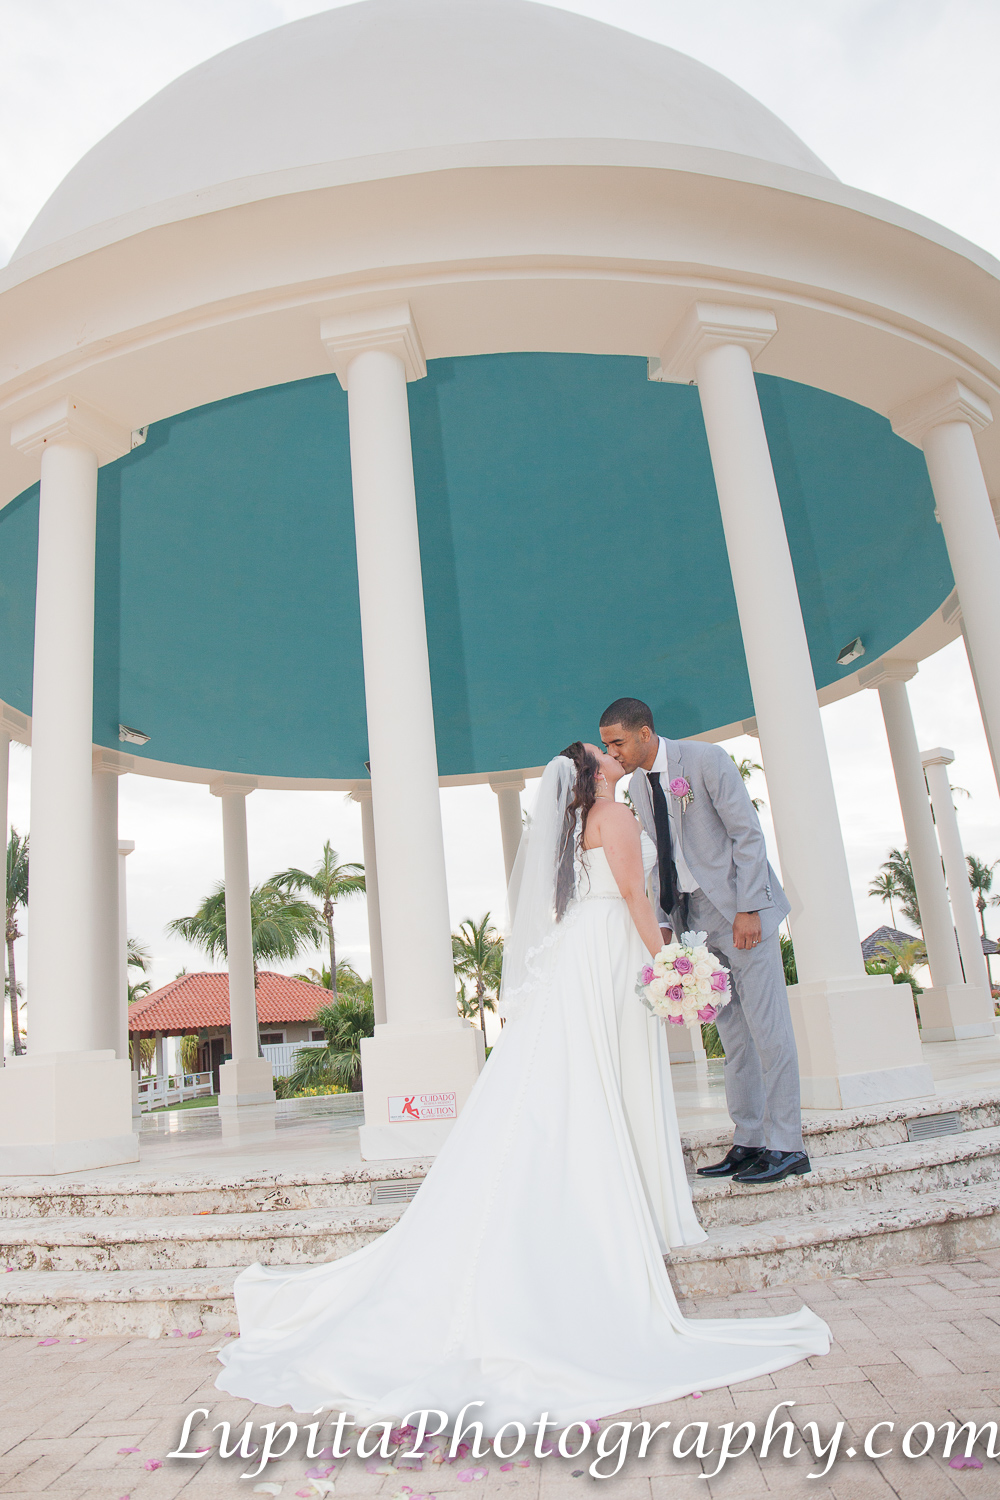 Meliá Coco Beach Resort. Rio Grande. Puerto Rico. The newly-wed couple celebrating their special day.